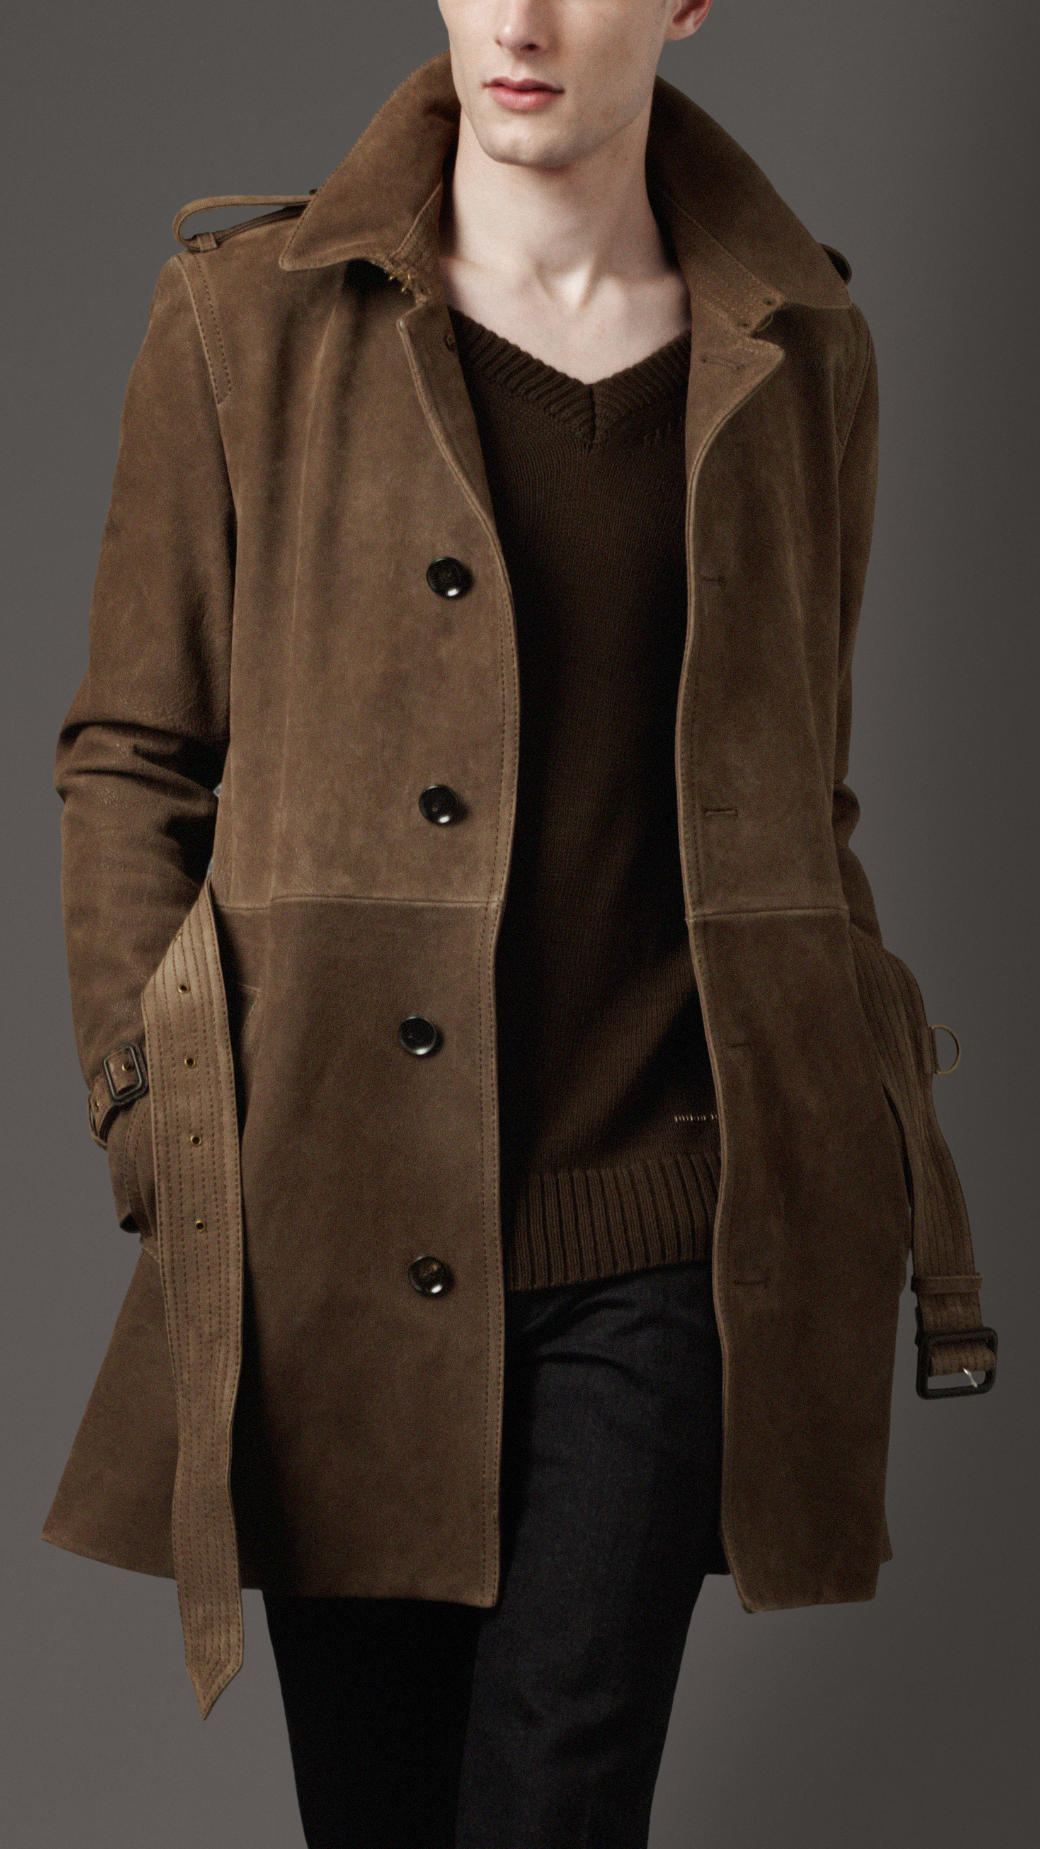 hot-selling real official buying cheap Burberry Brown Suede Trench Coat for men